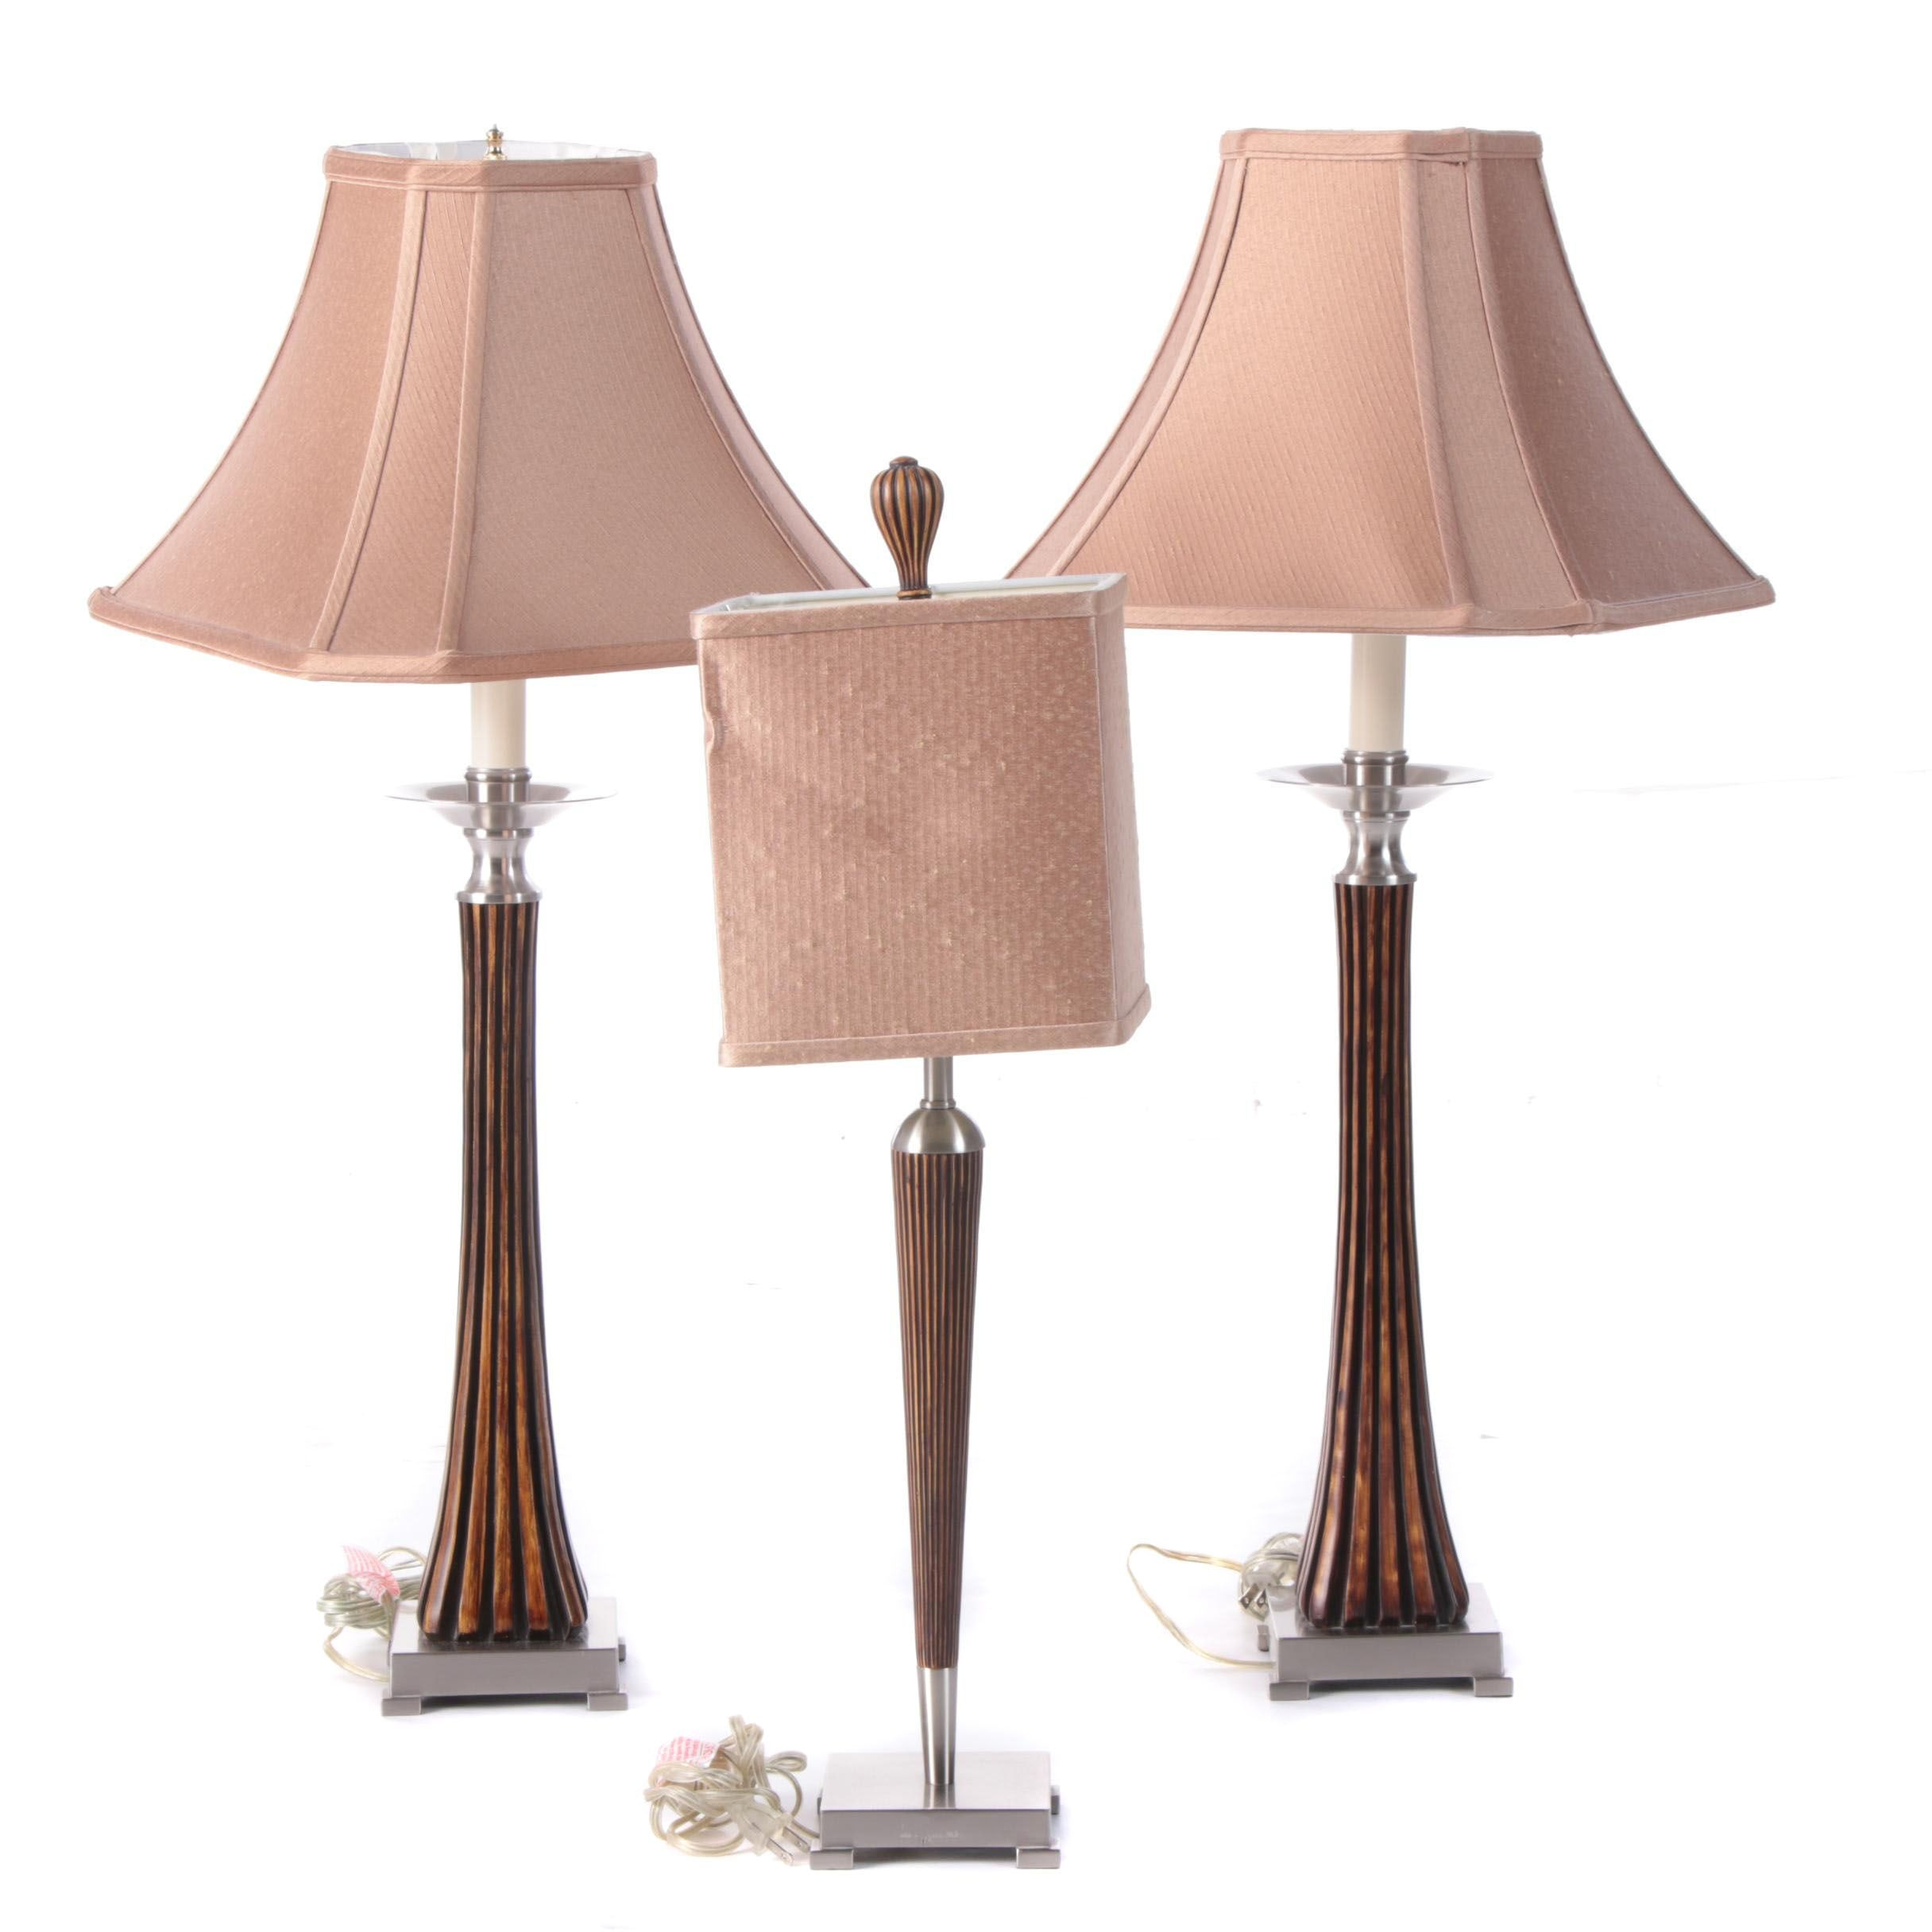 Uttermost Reeded Console Lamps and Table Lamp with Shades